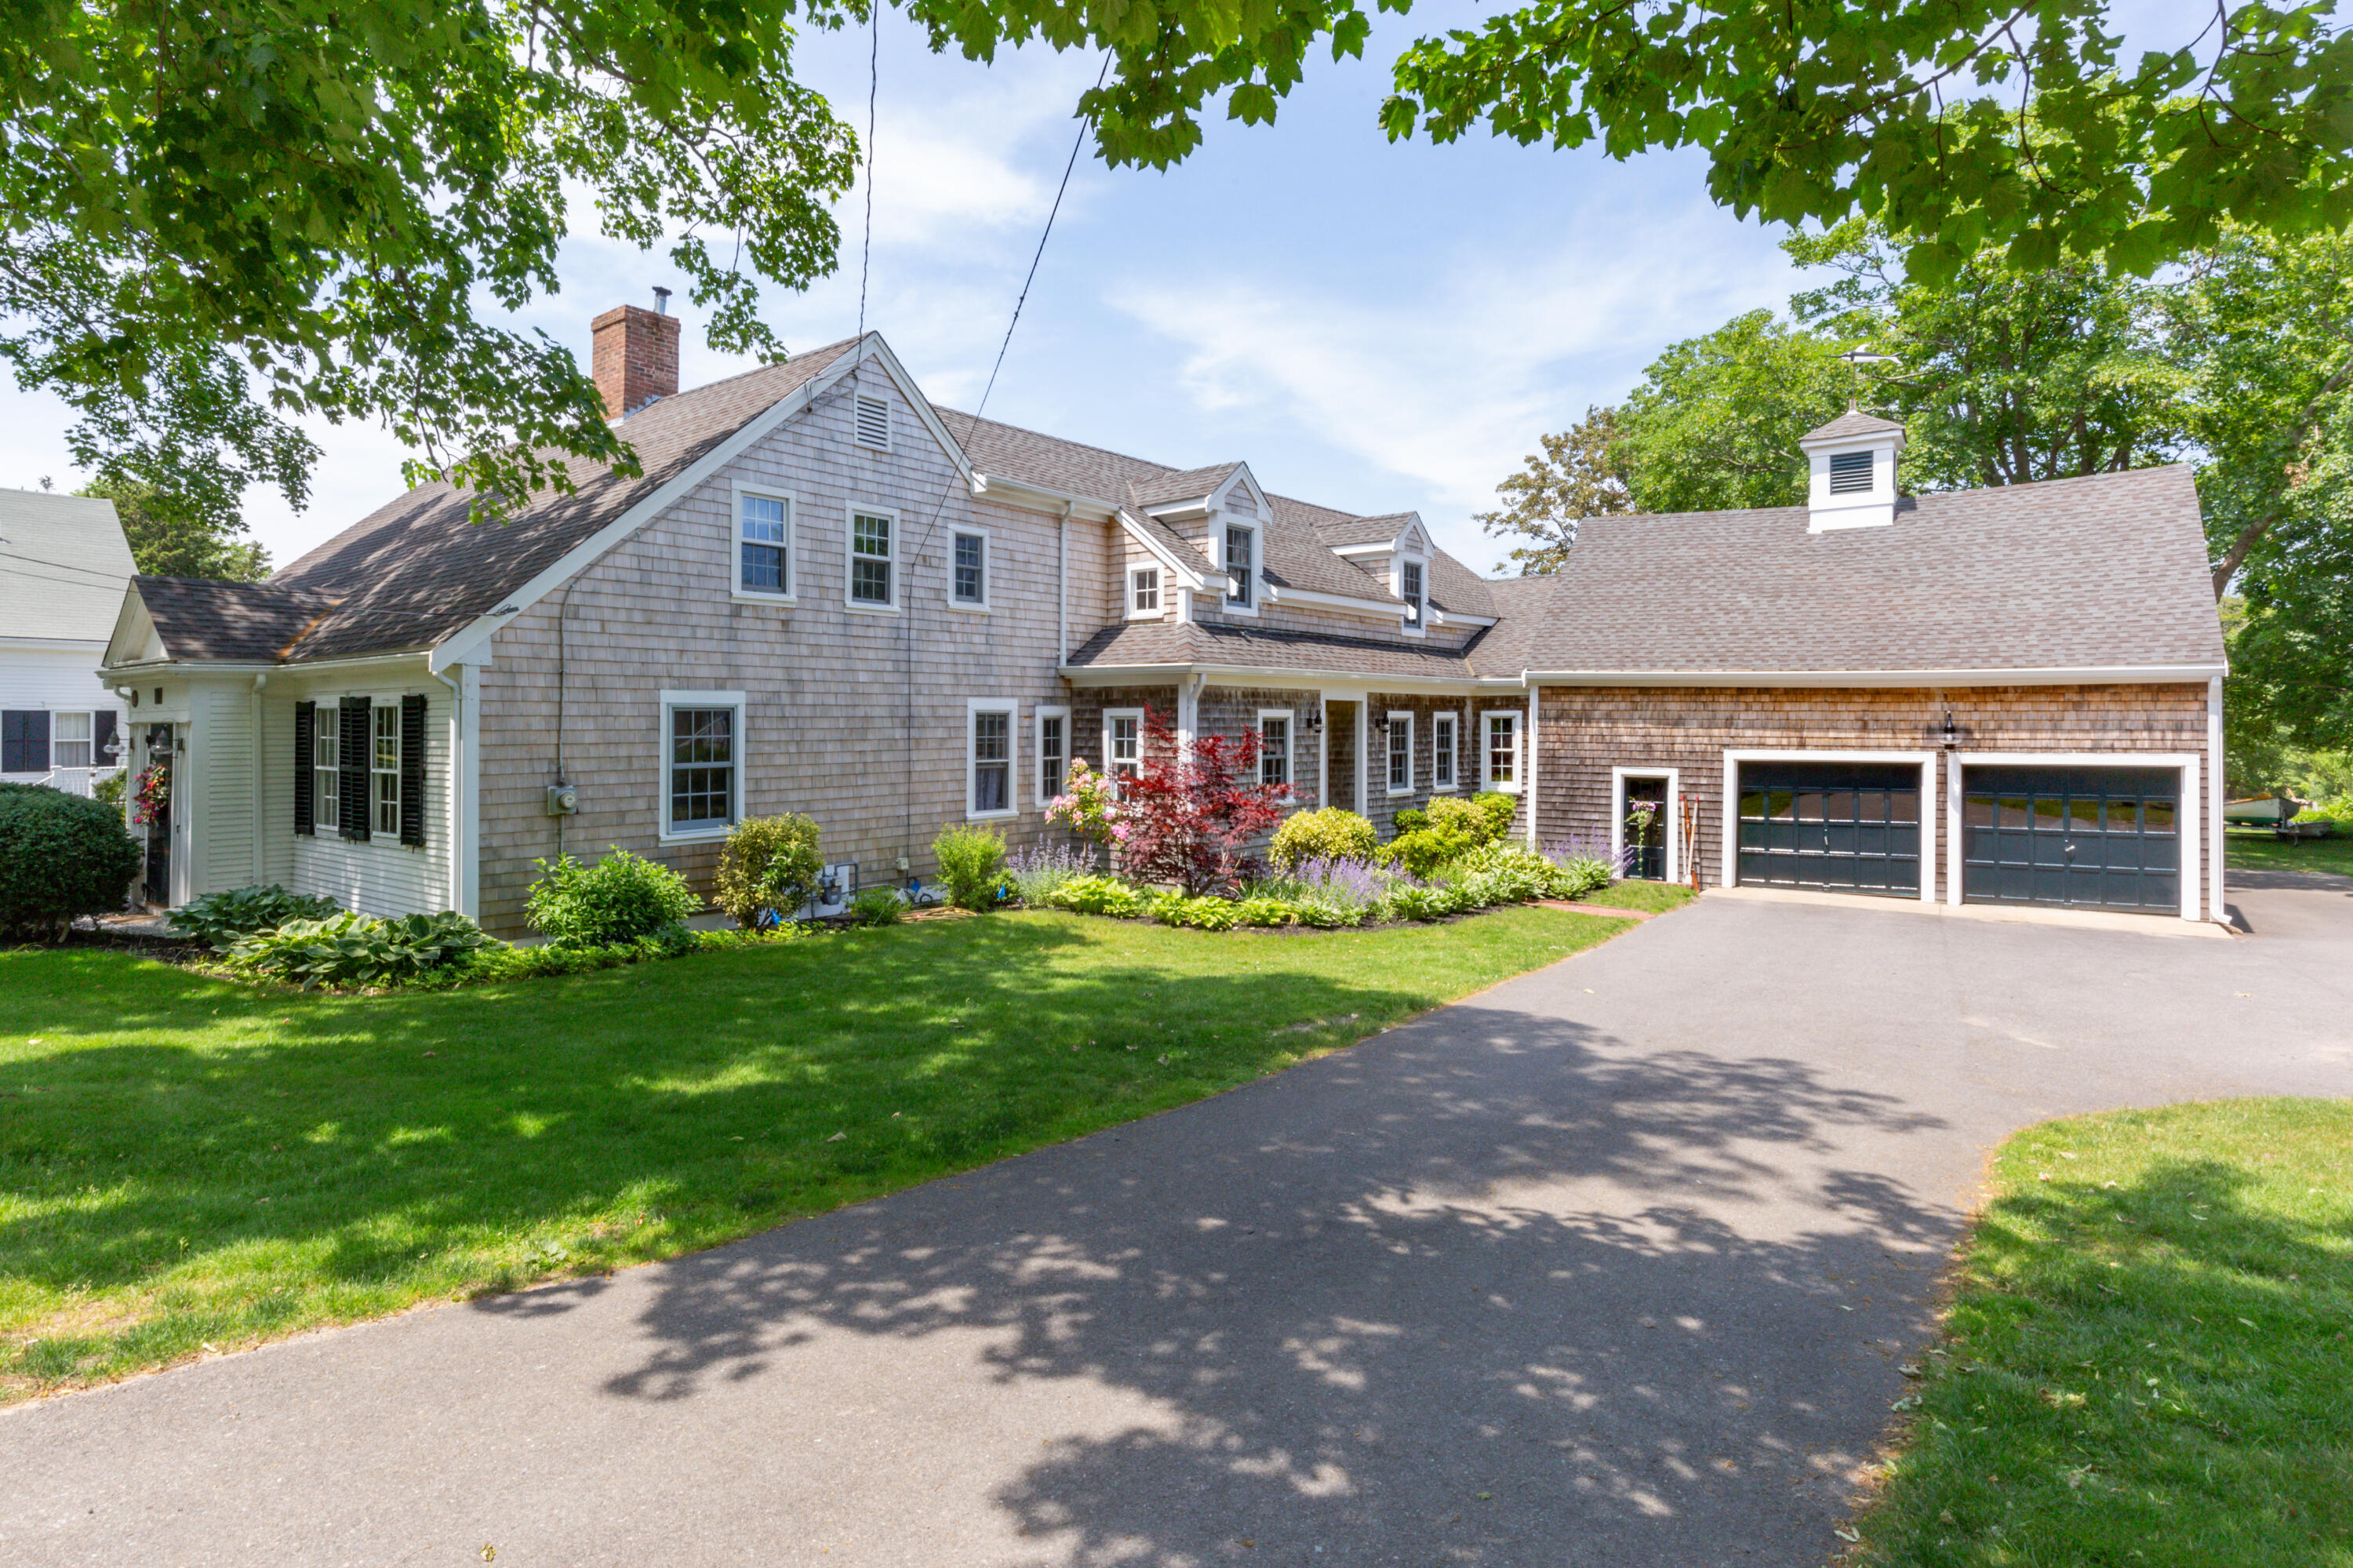 302 Route 6A Yarmouth Port MA, 02675 details